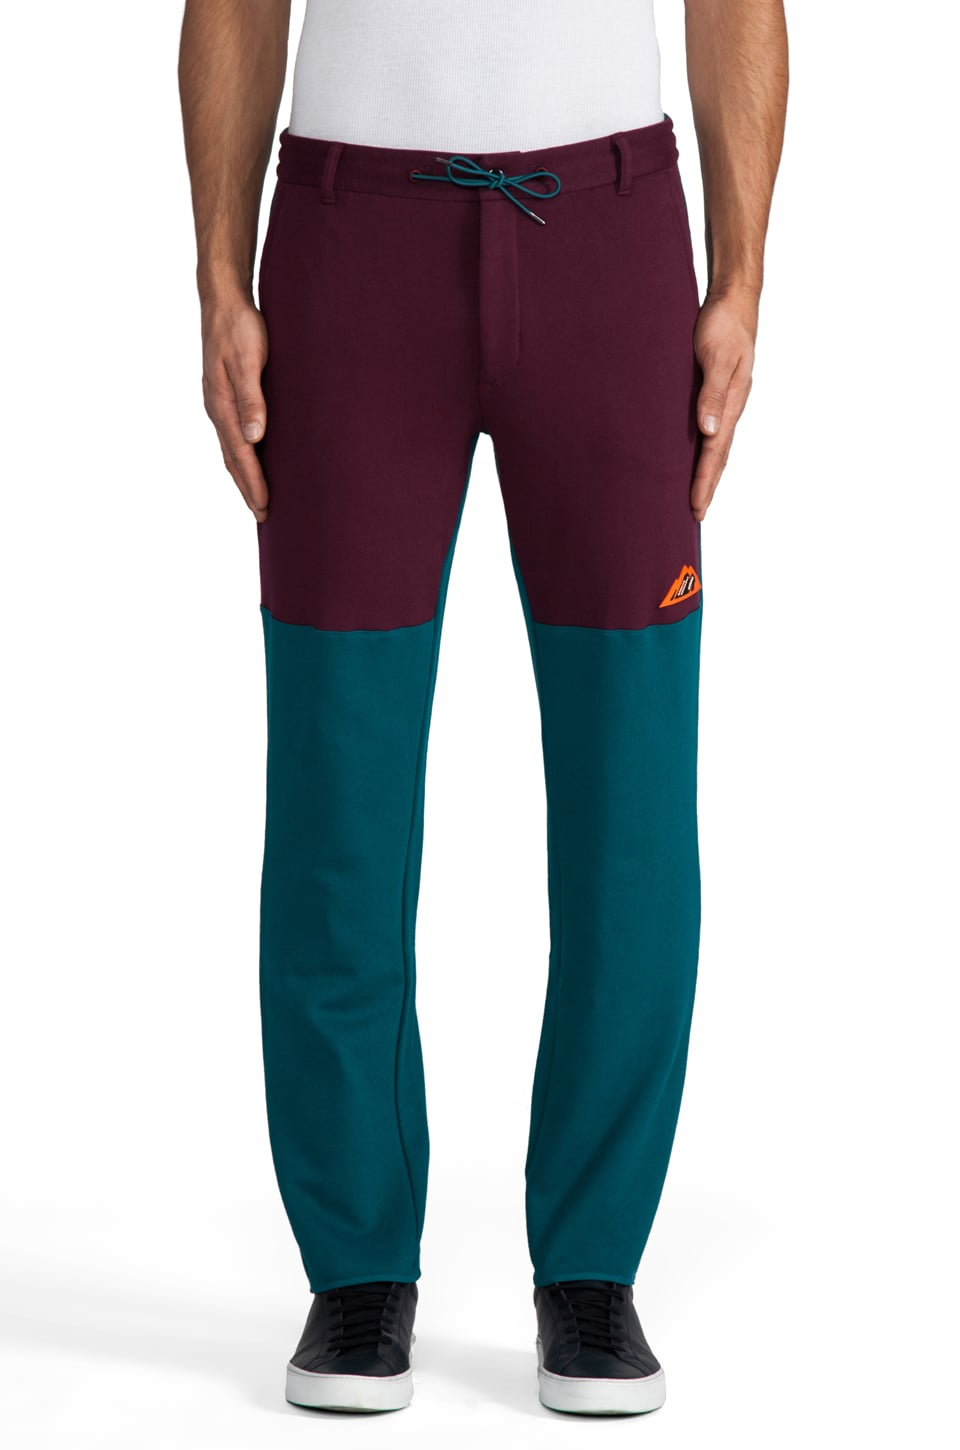 adidas Originals by Opening Ceremony Fleece Track Pant in Big Sur/ Light Maroon